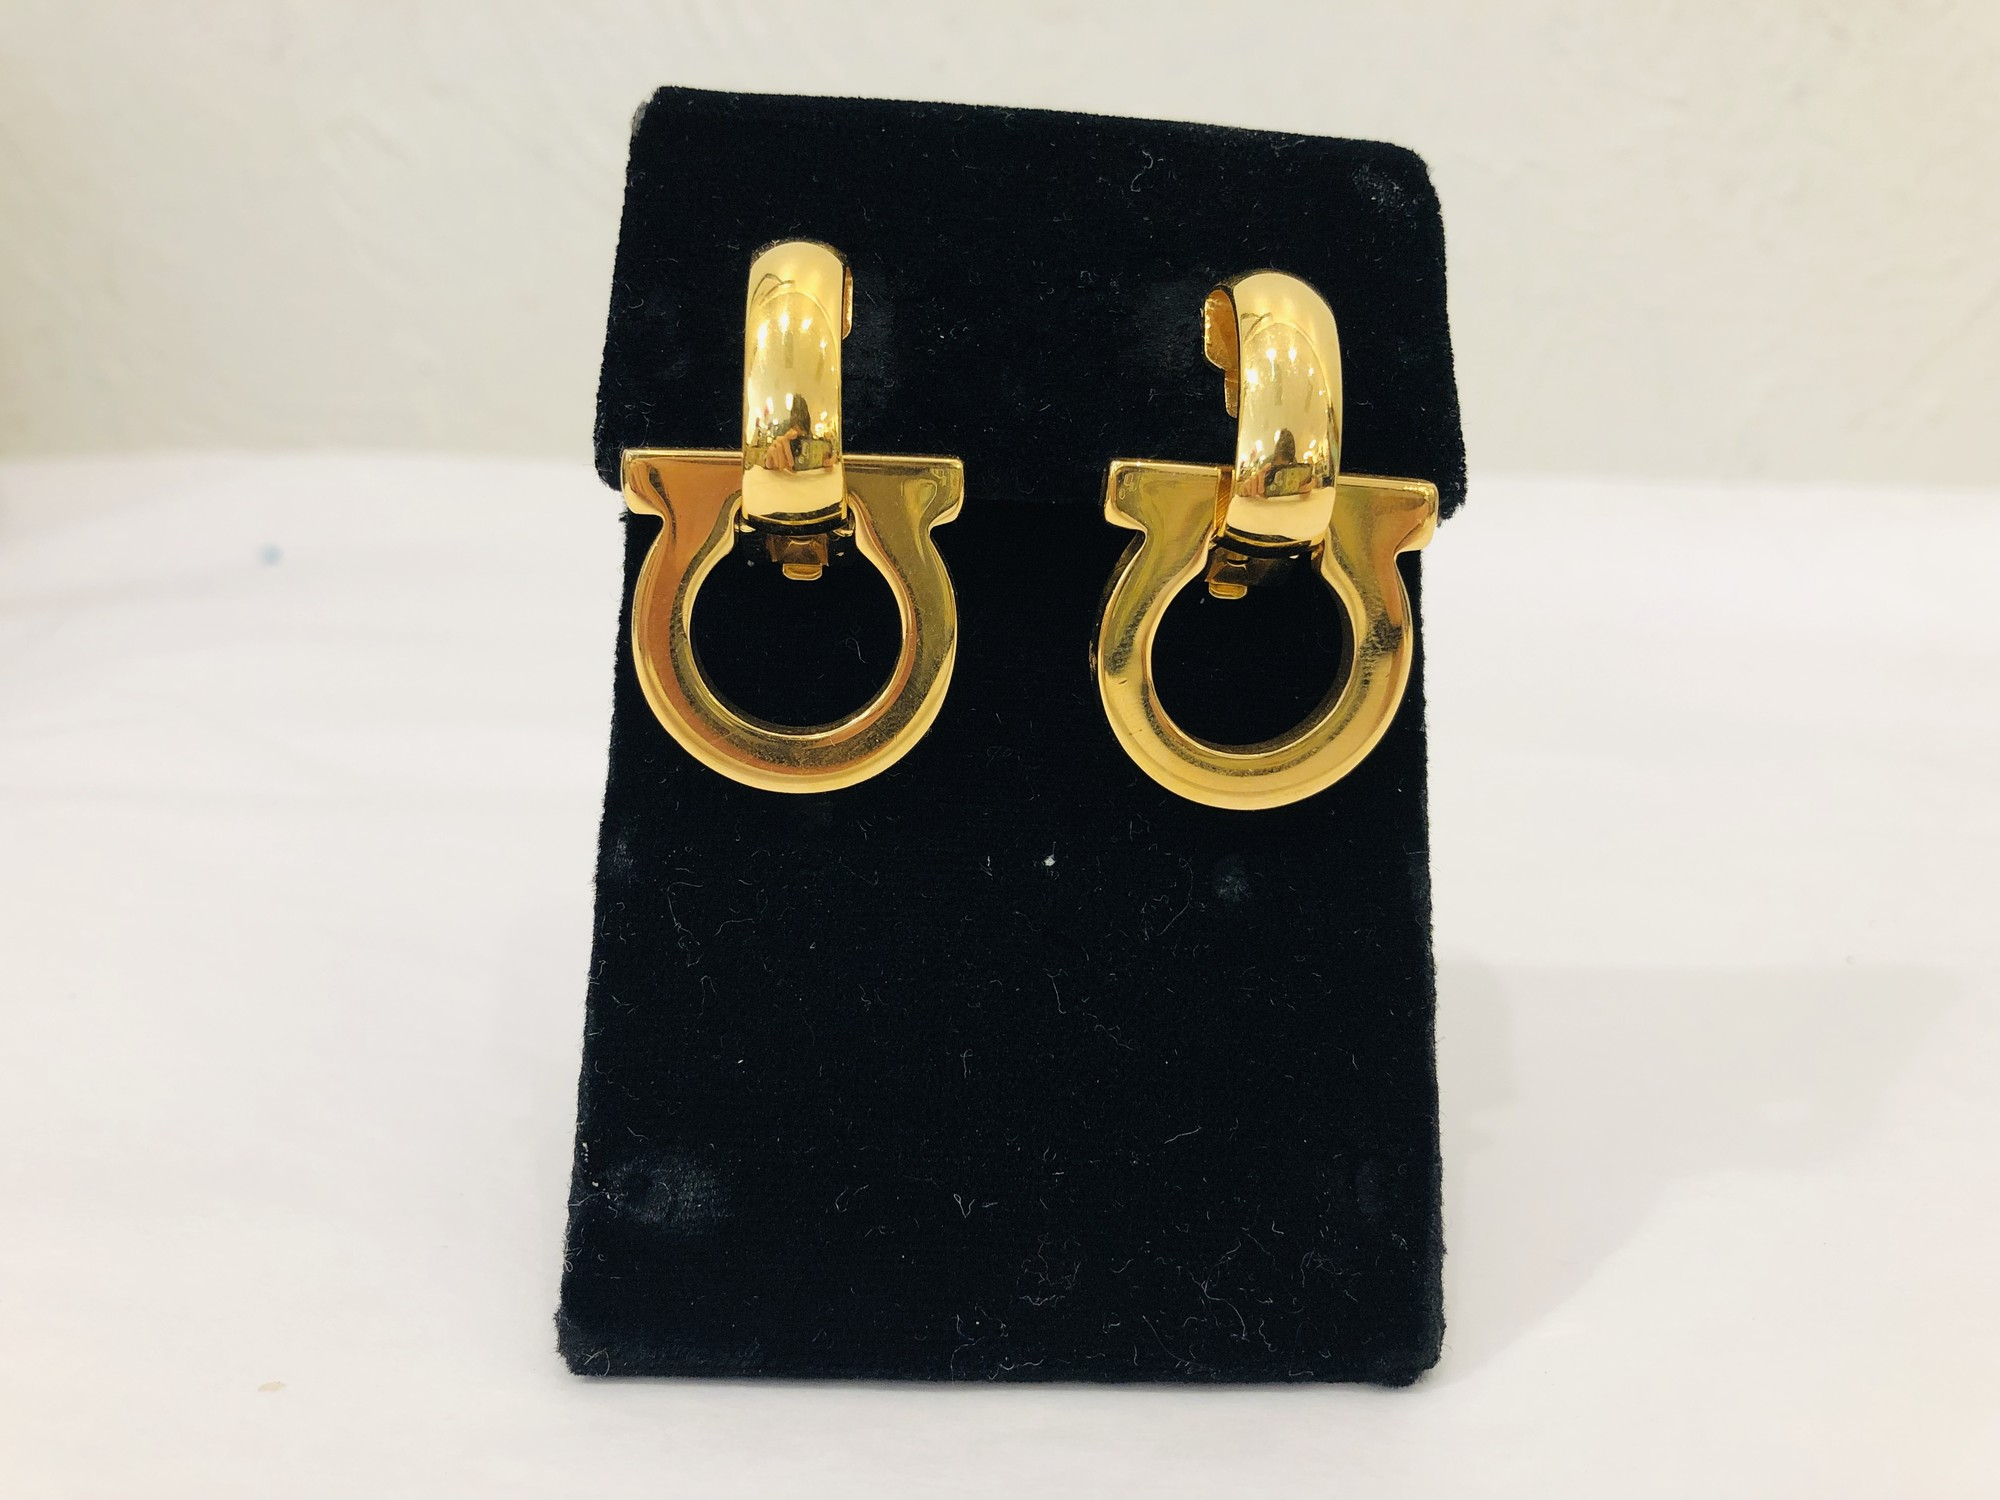 Ferragamo goldtone clip earrings<br /> <br /> Ferragamo logo, super cute!